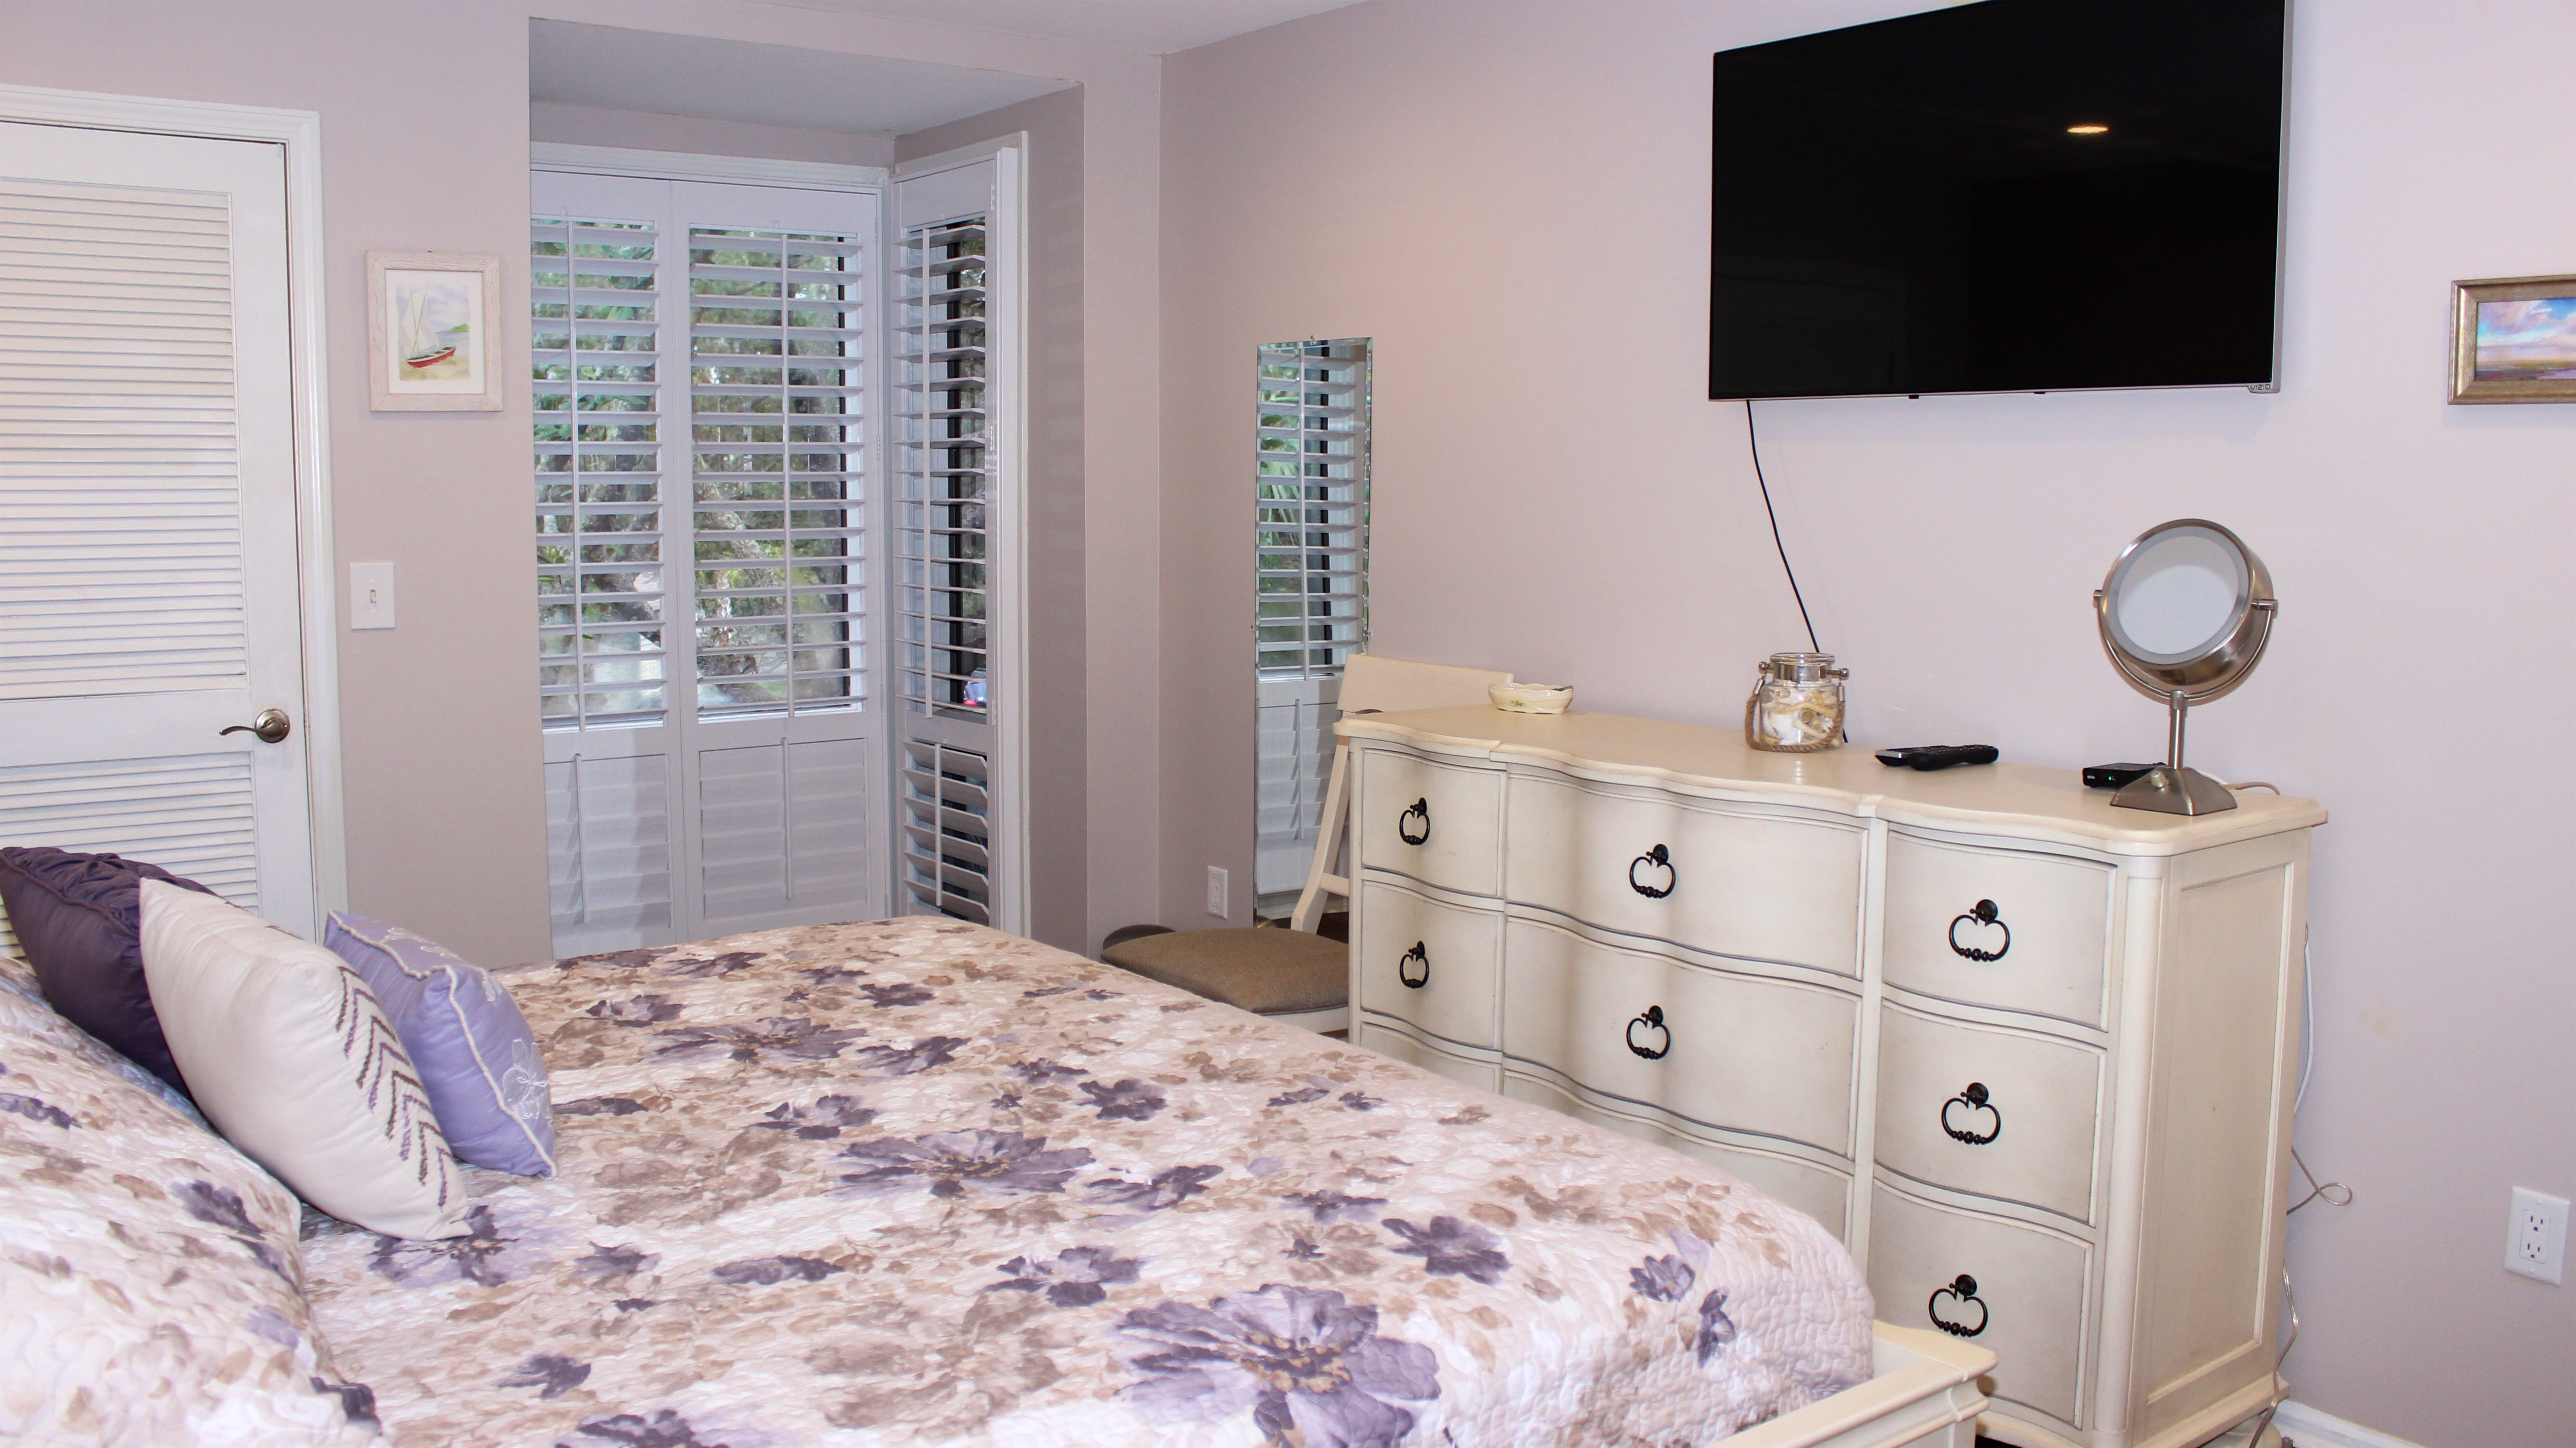 This retreat has a wall mounted HDTV, plantation shutters and new dresser.